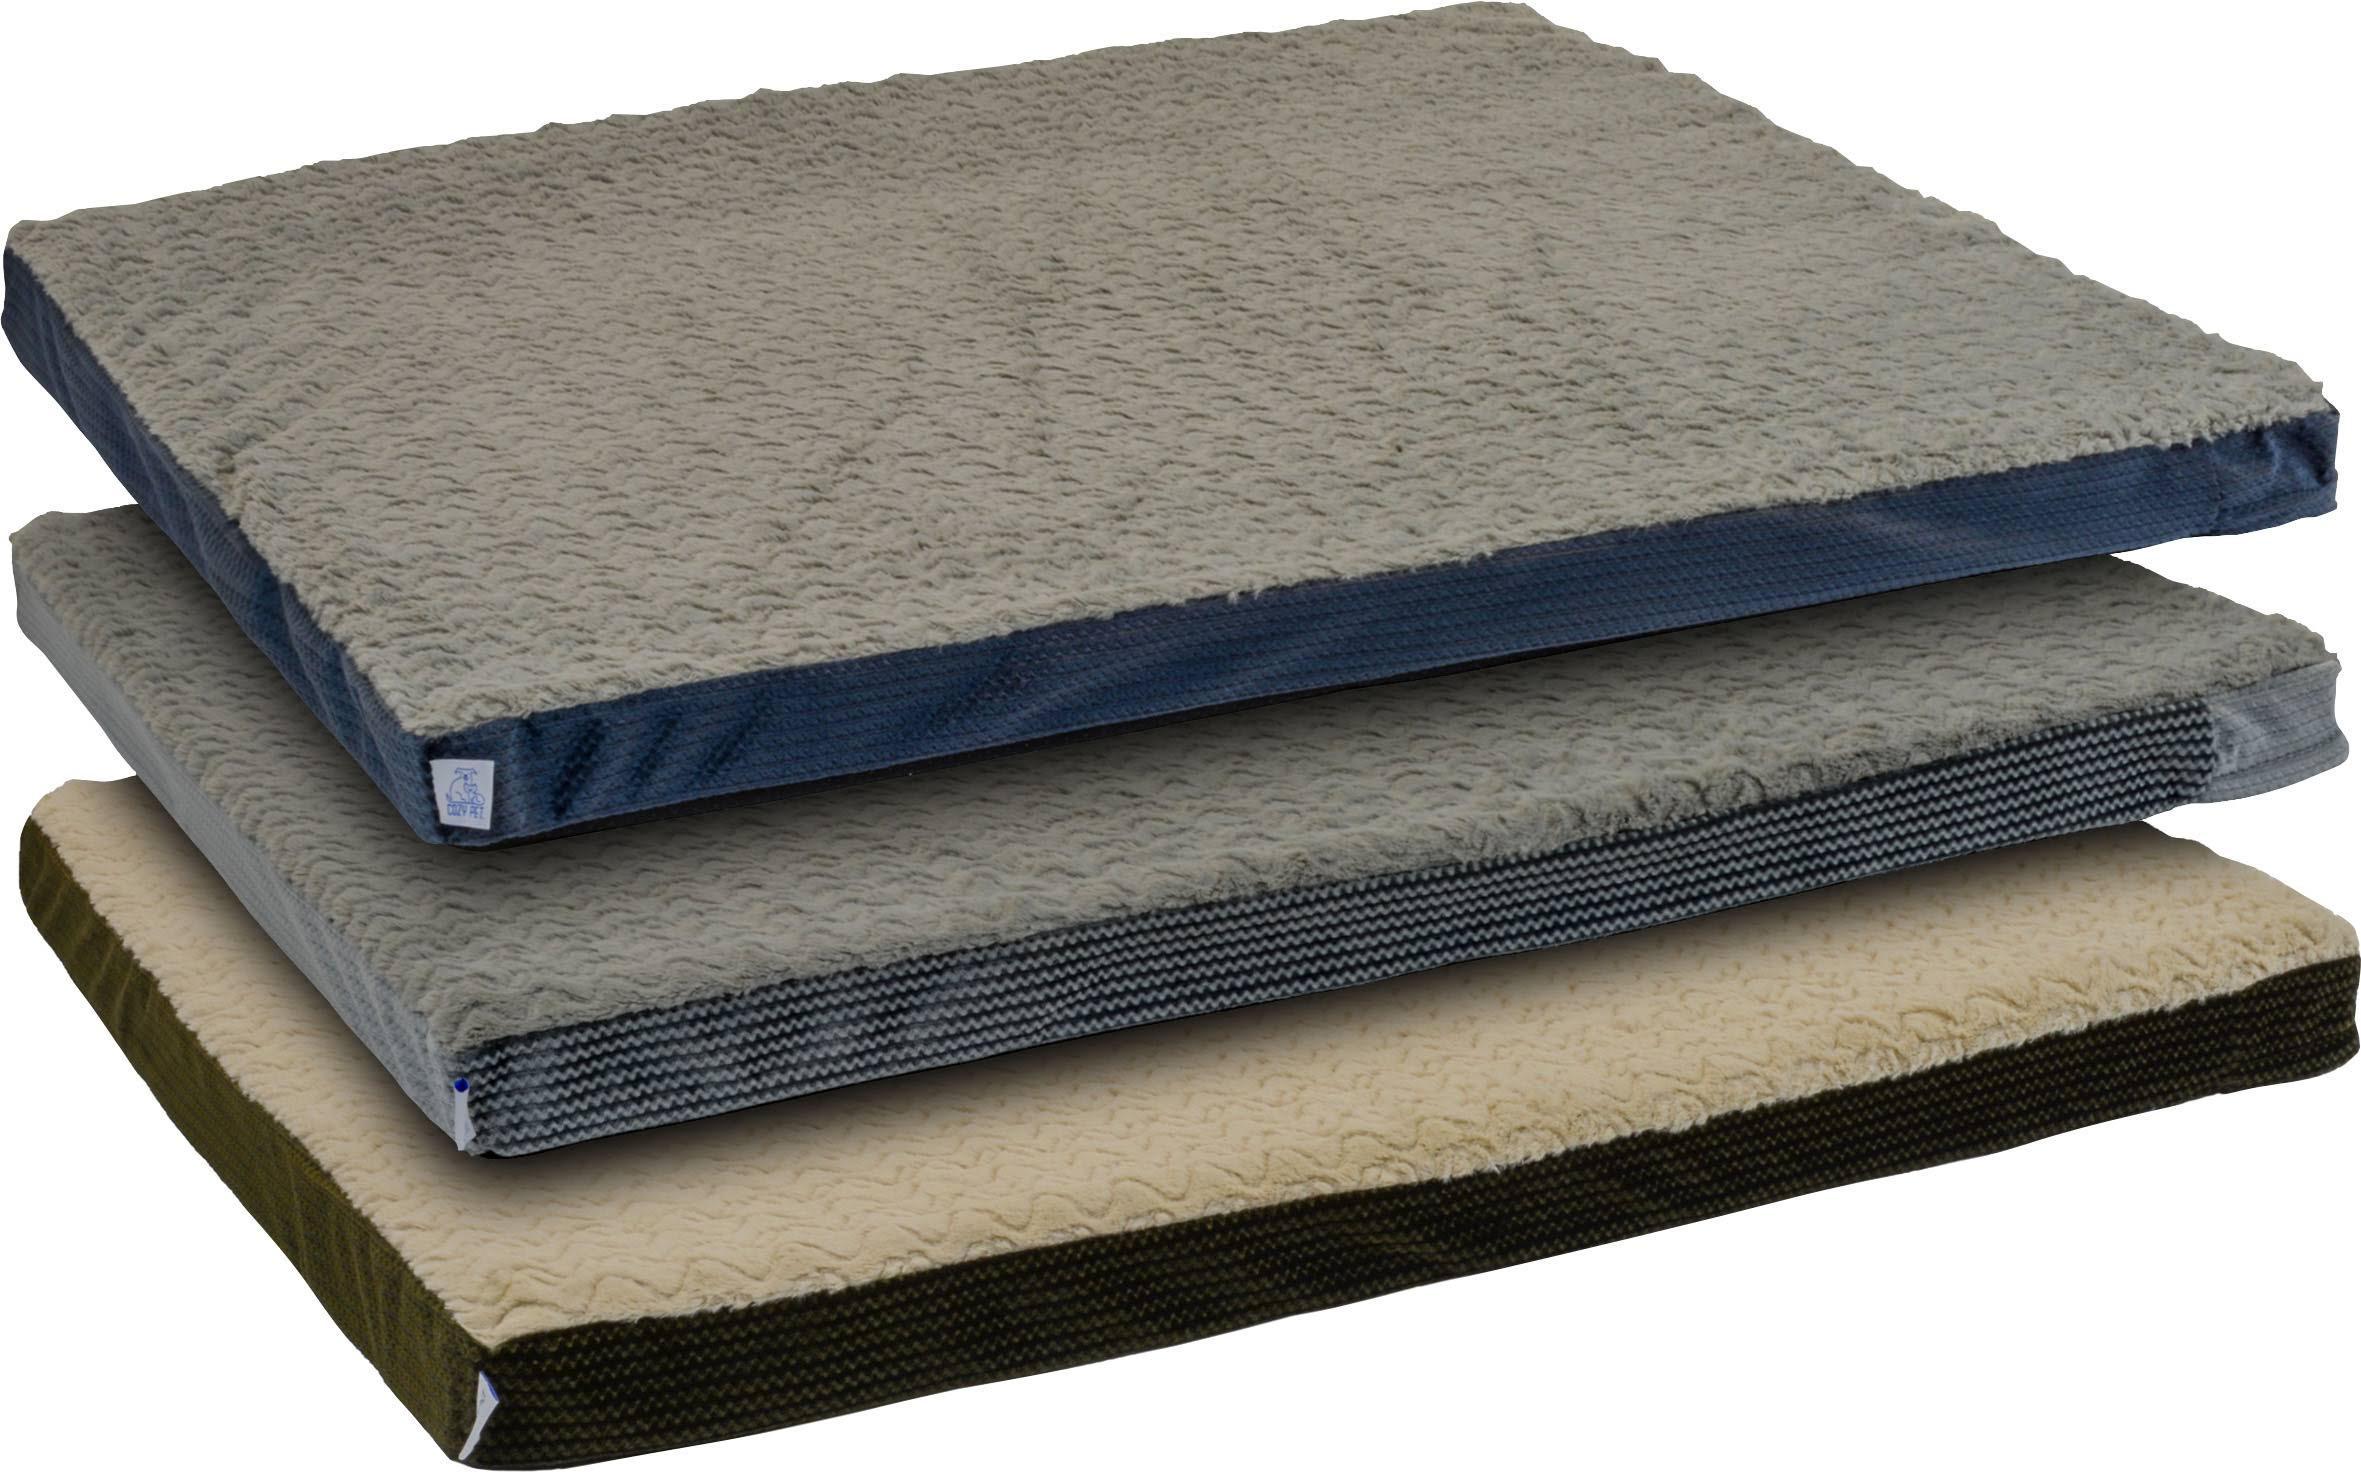 Dallas Assorted Cozy Pet Orthopedic Foam Rectangle Beds 27in x 36in